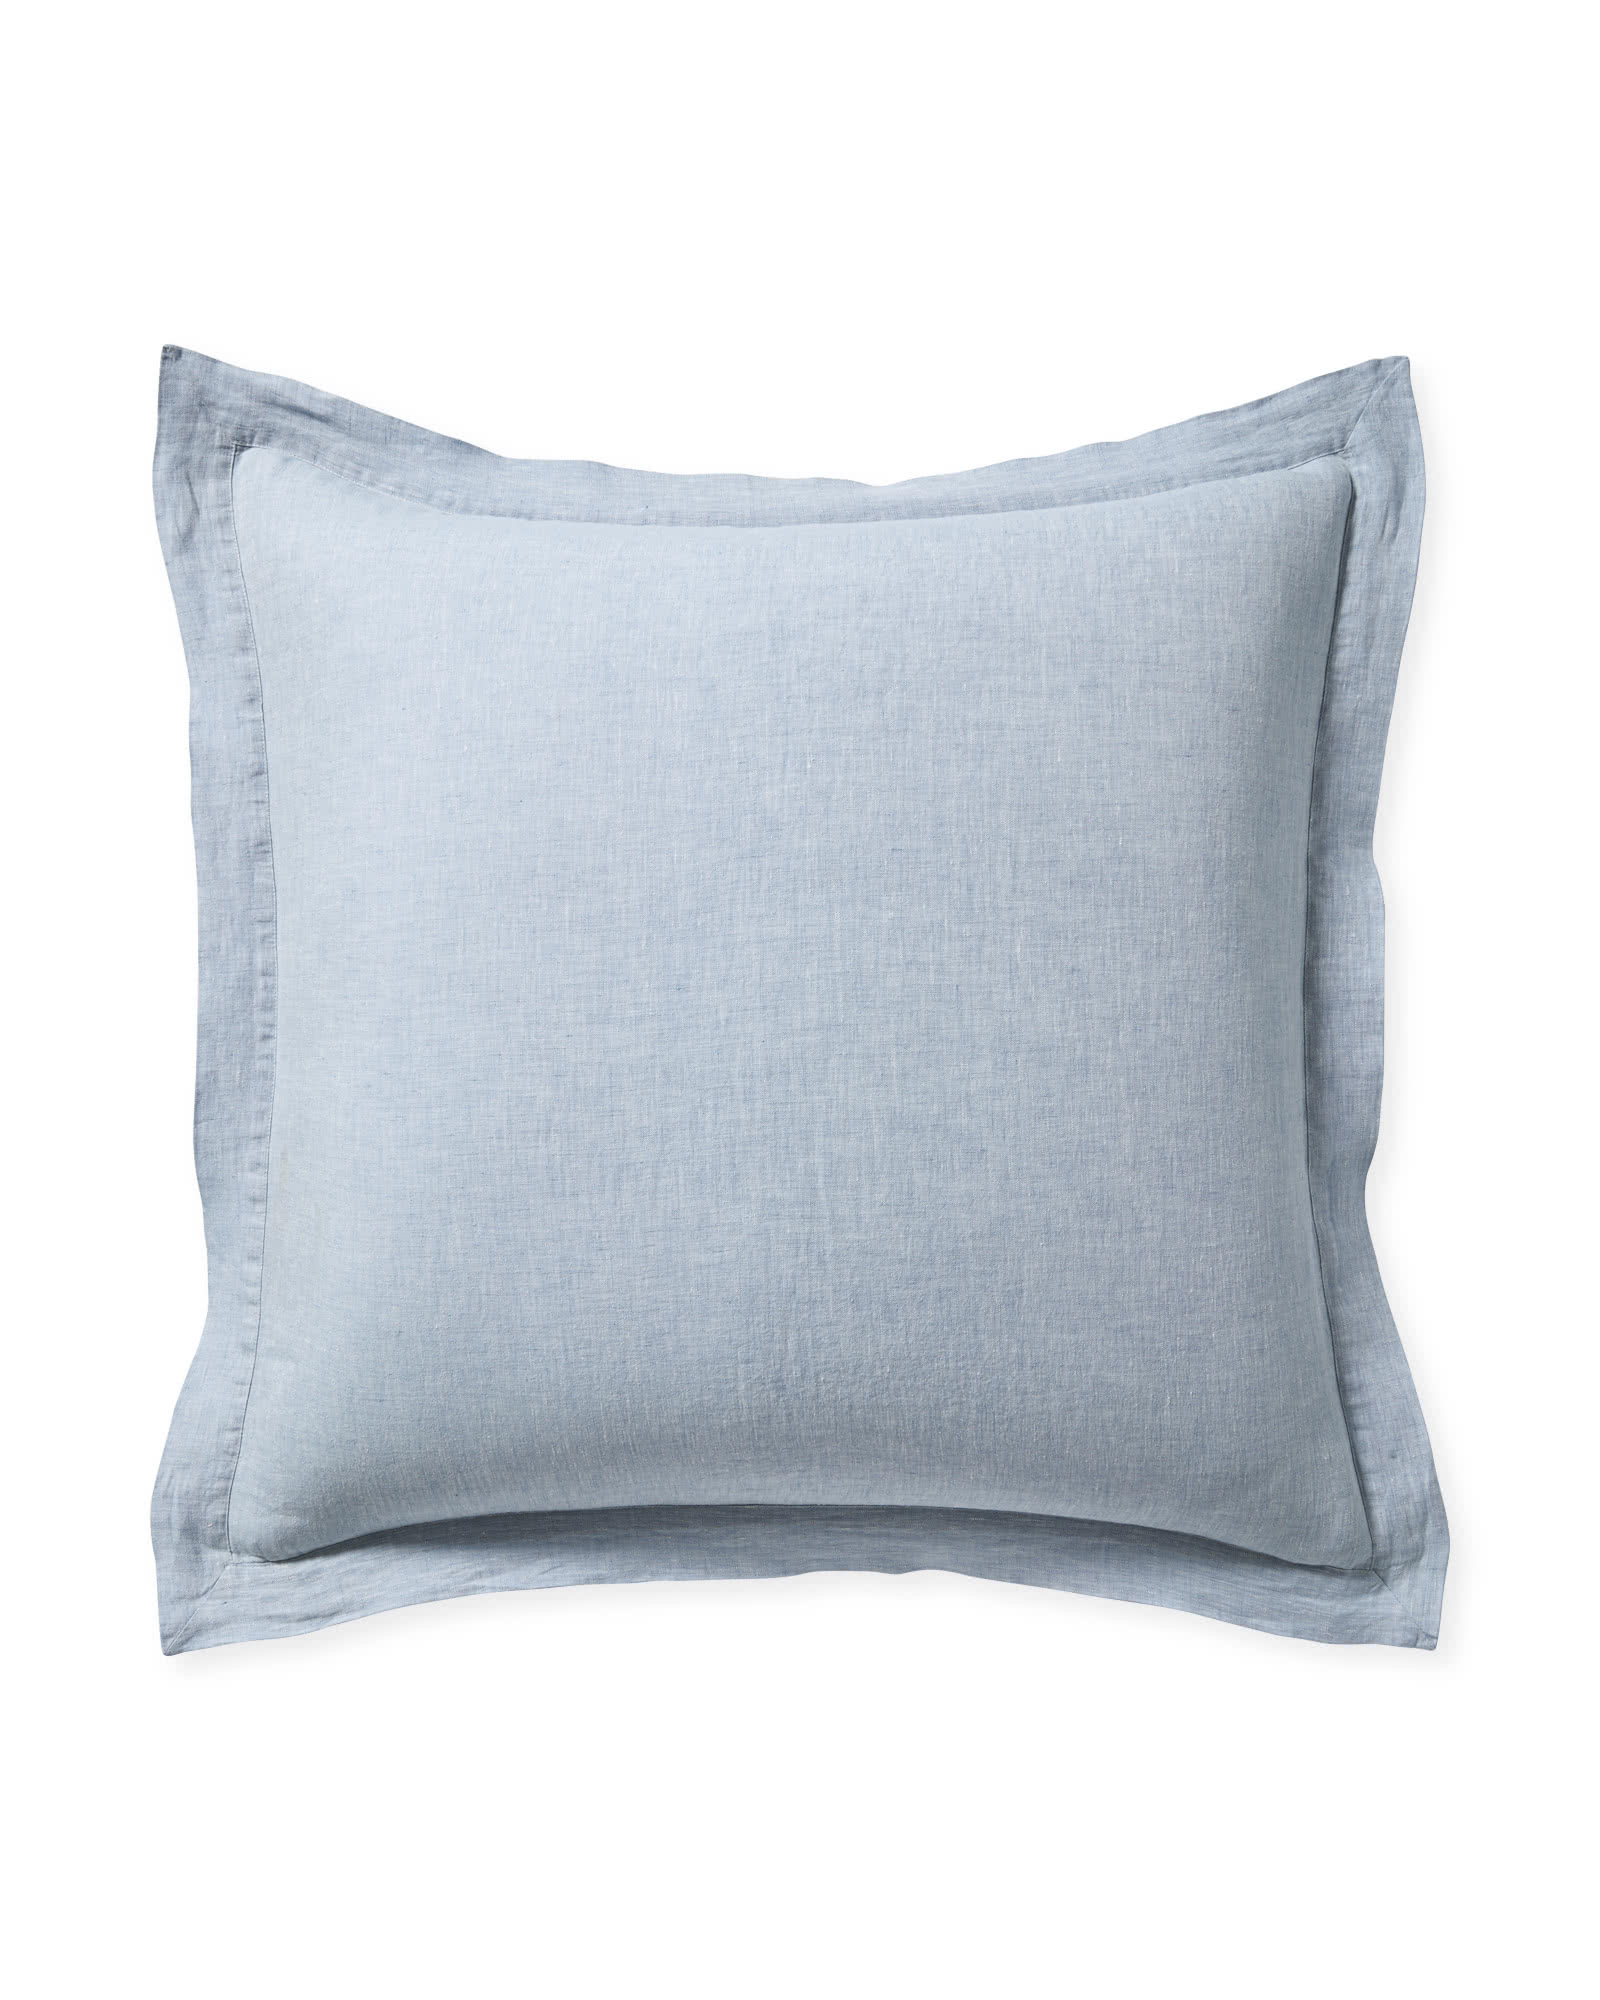 Cavallo Linen Shams, Blue Chambray